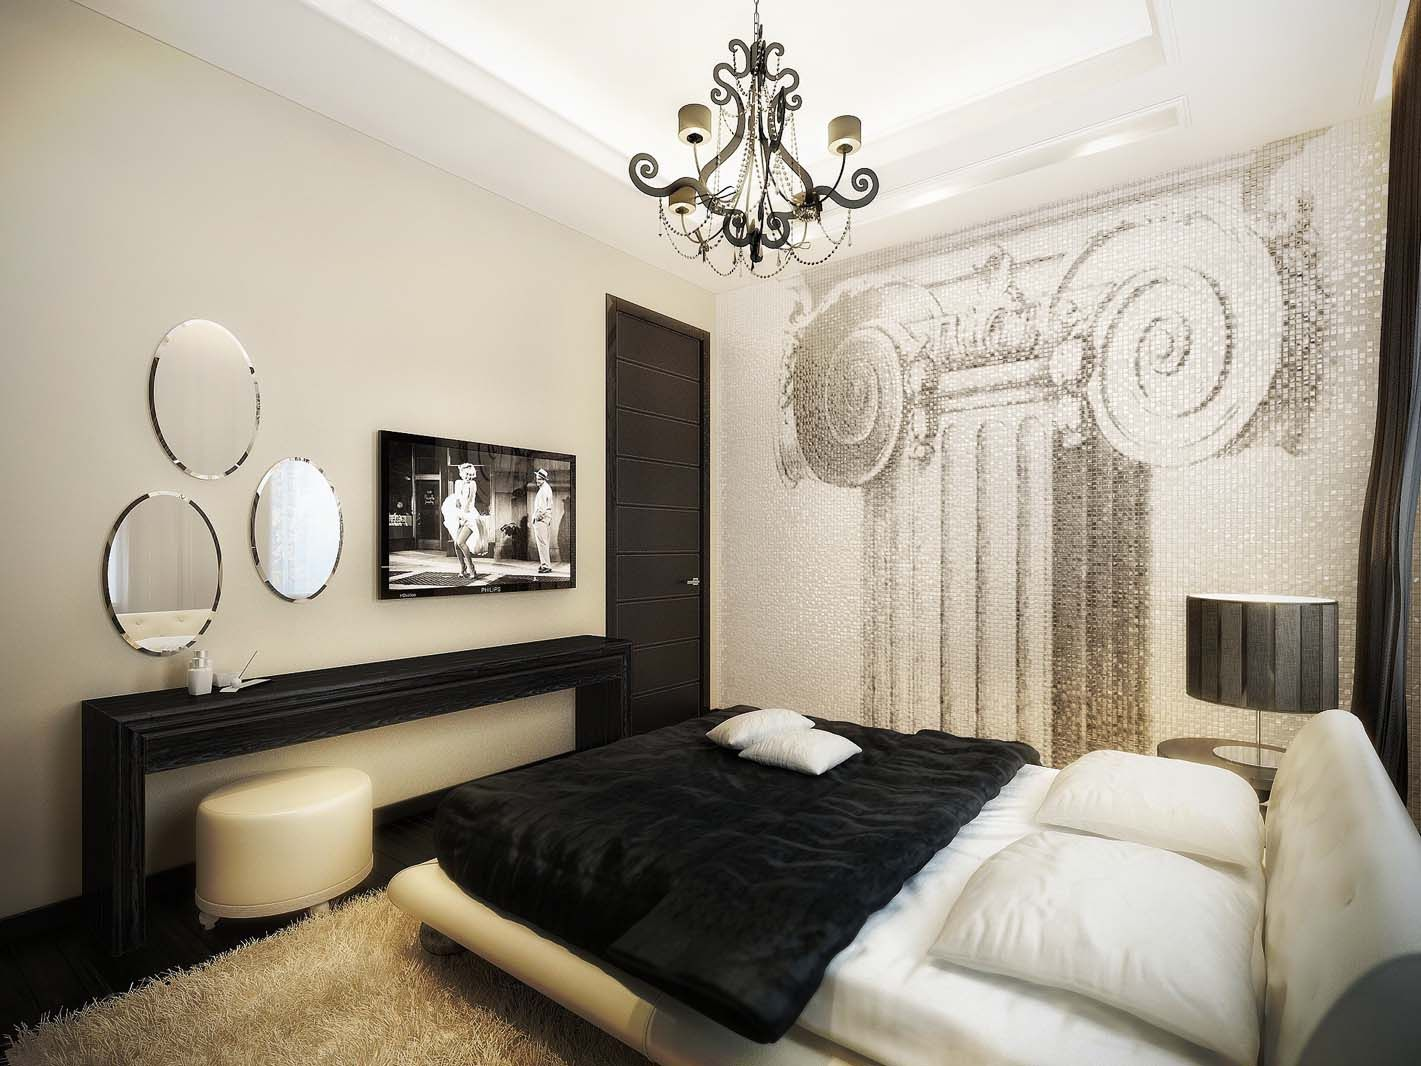 Luxury Vintage Apartment Master Bedroom Decor #homedecor #homedesign